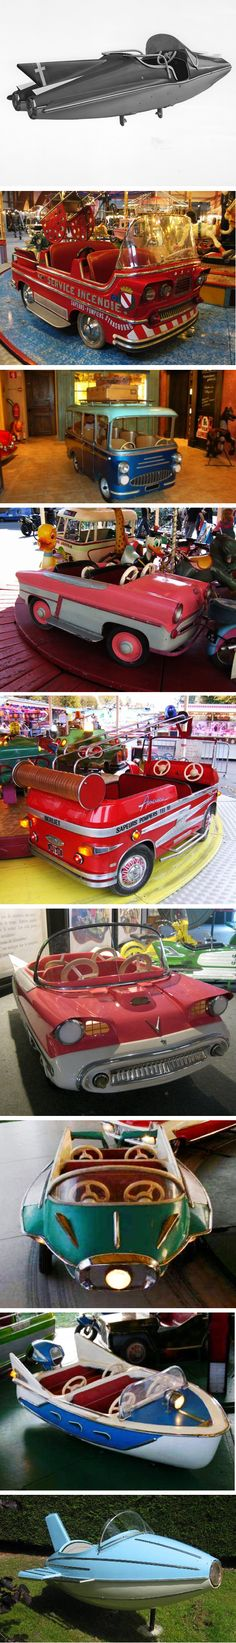 Fairground rides vintage vehicles  ~ Repinned via Sandy